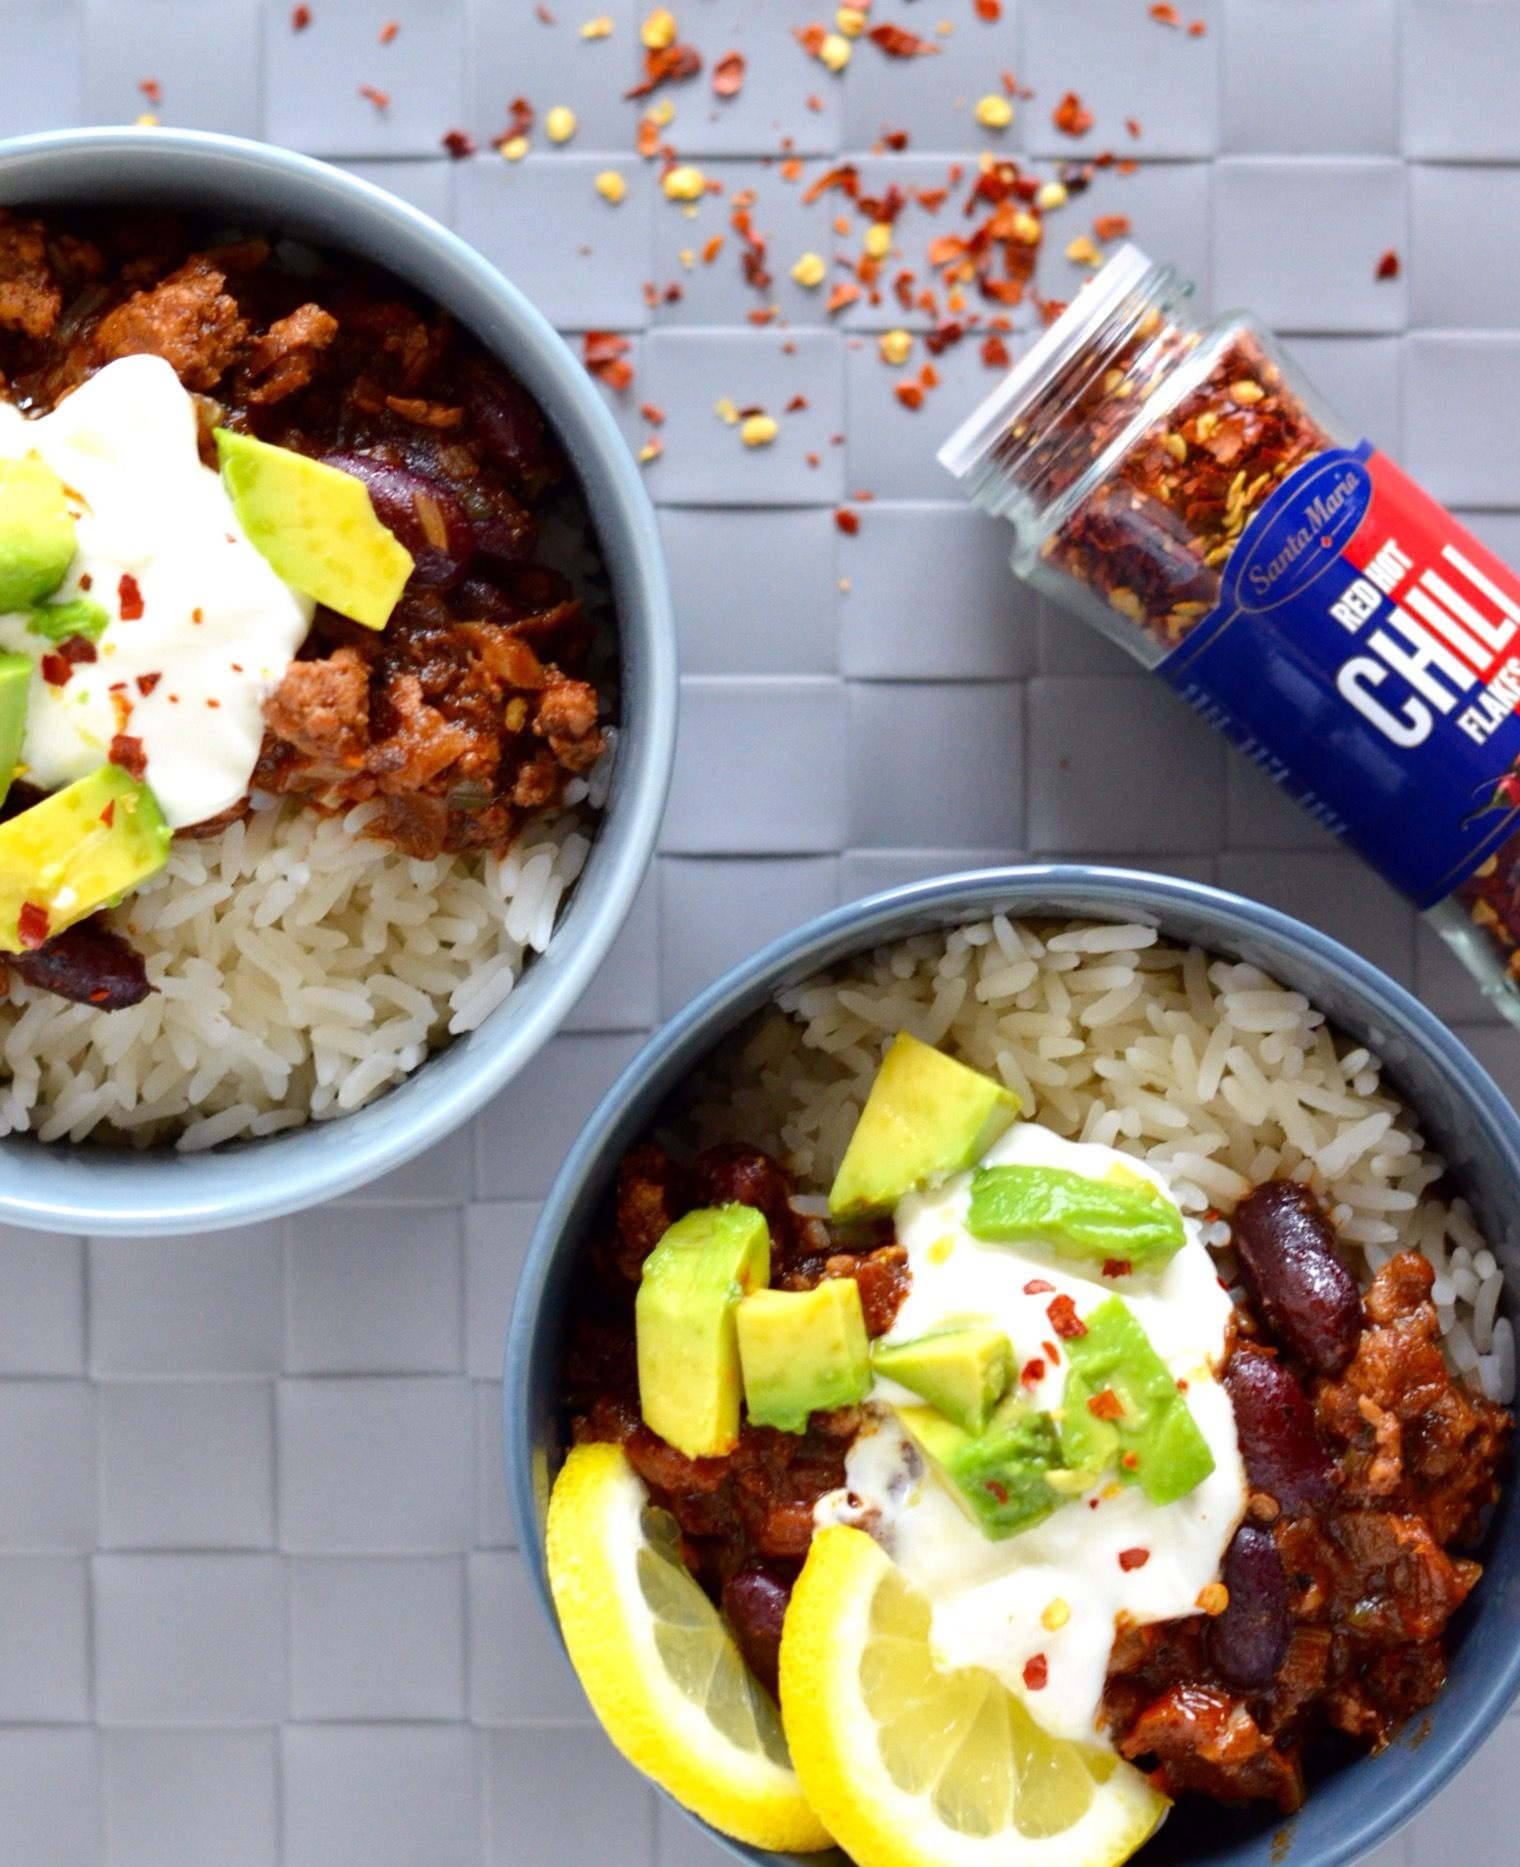 chili-con-carne-med-kylling